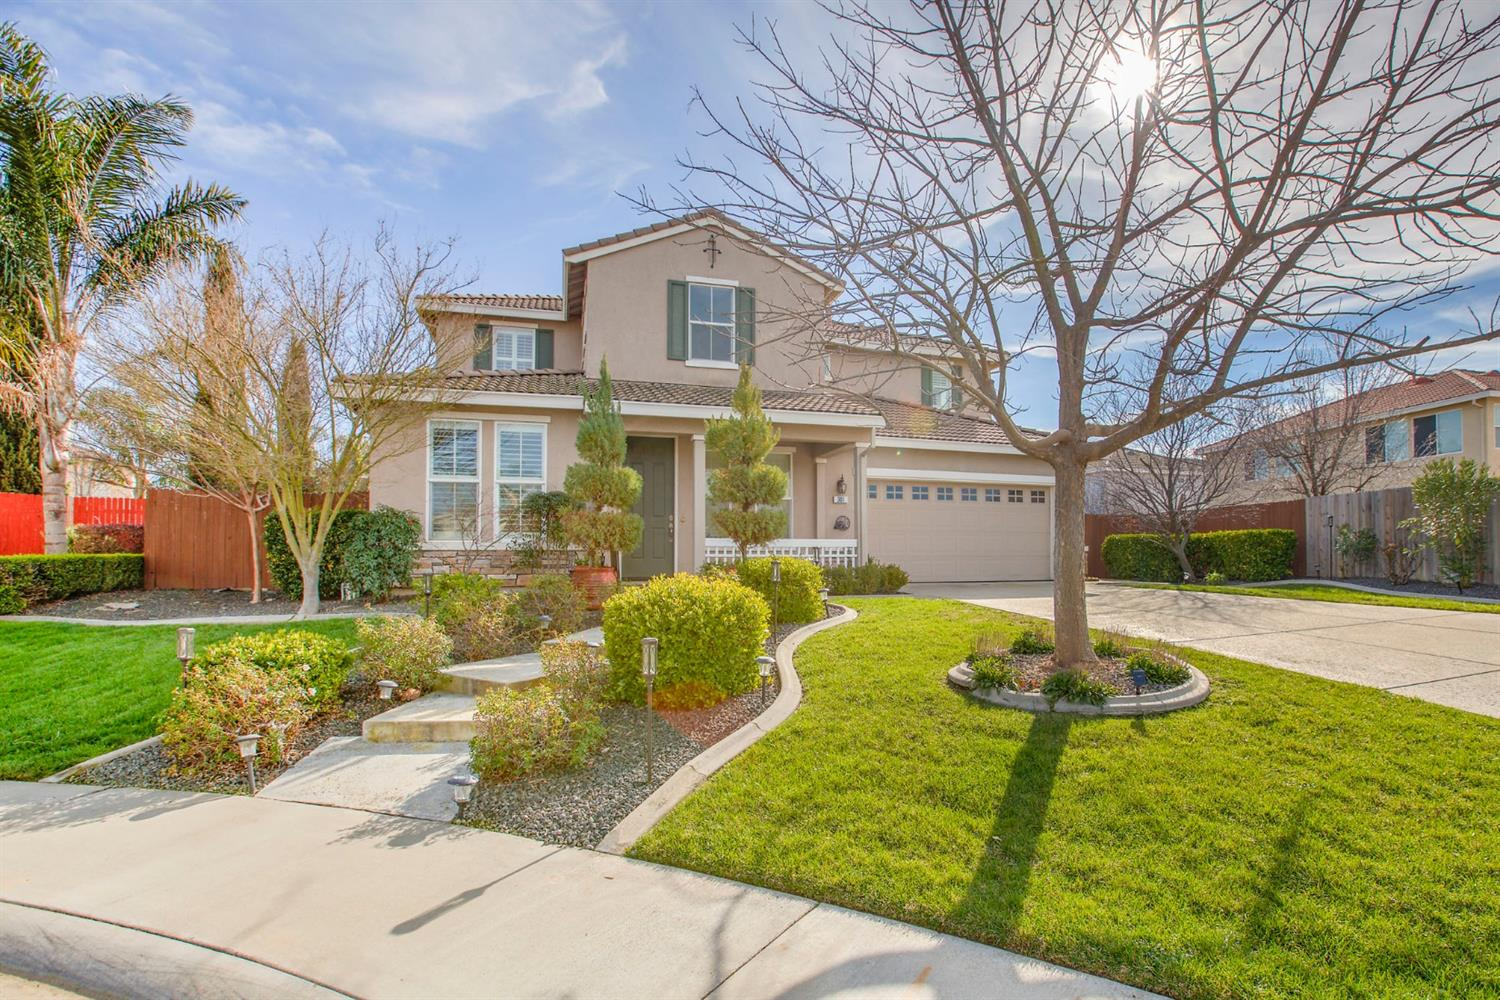 SOLD - Lincoln Crossings, Lincoln